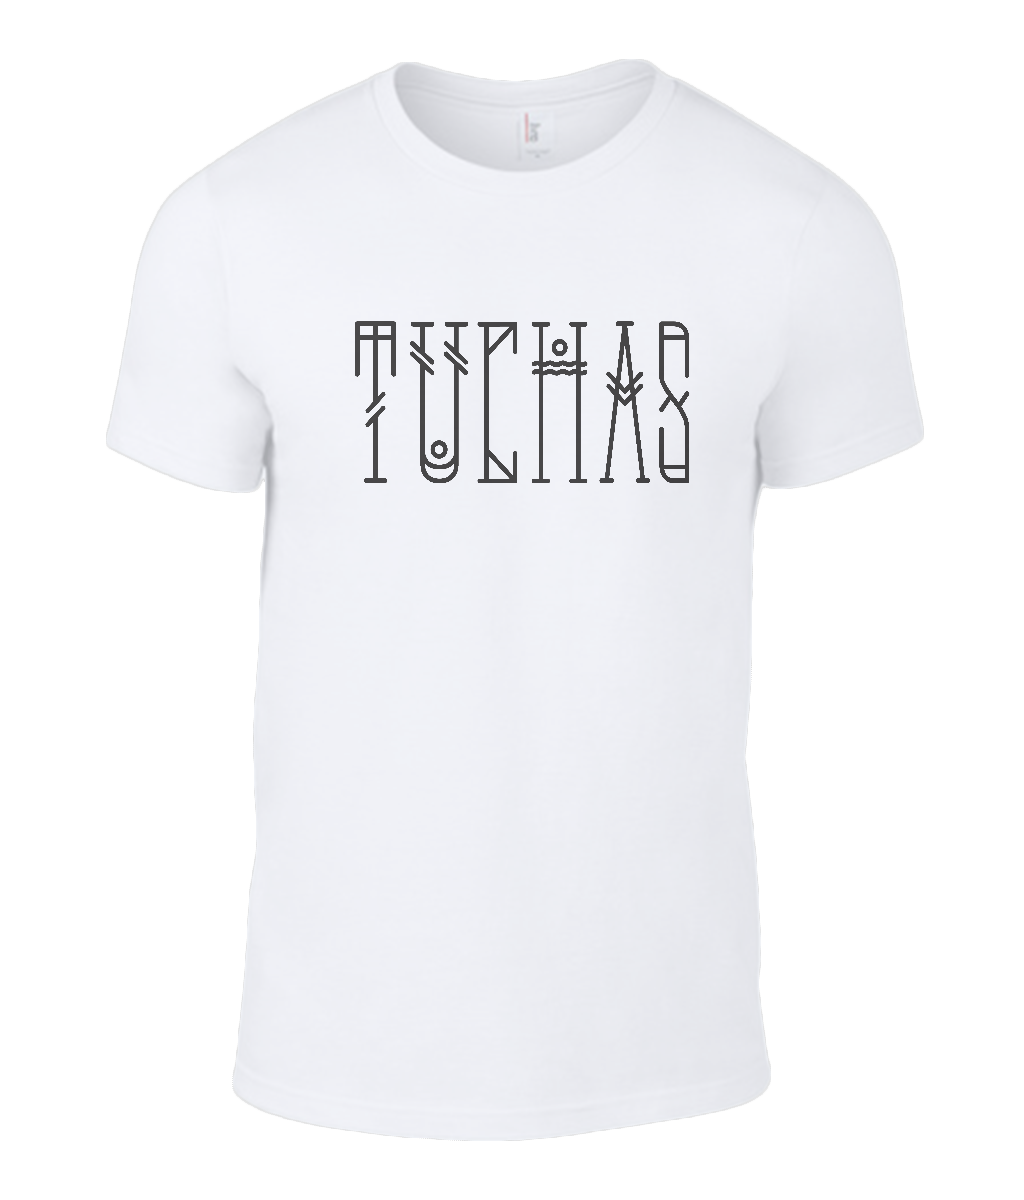 Round Neck T-Shirt - Tuchas - Lokshen Pudding UK - White